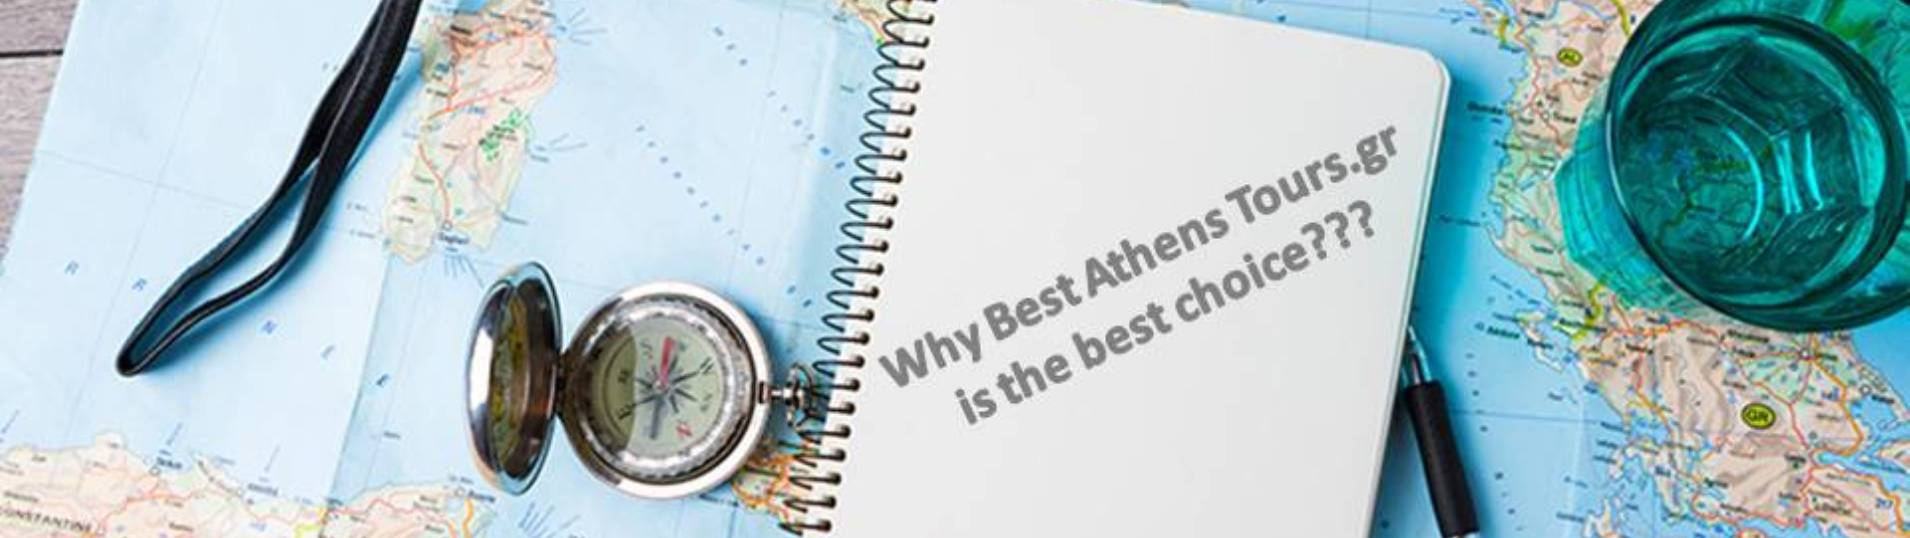 Frequently Asked Questions of the Best Athens Tours company